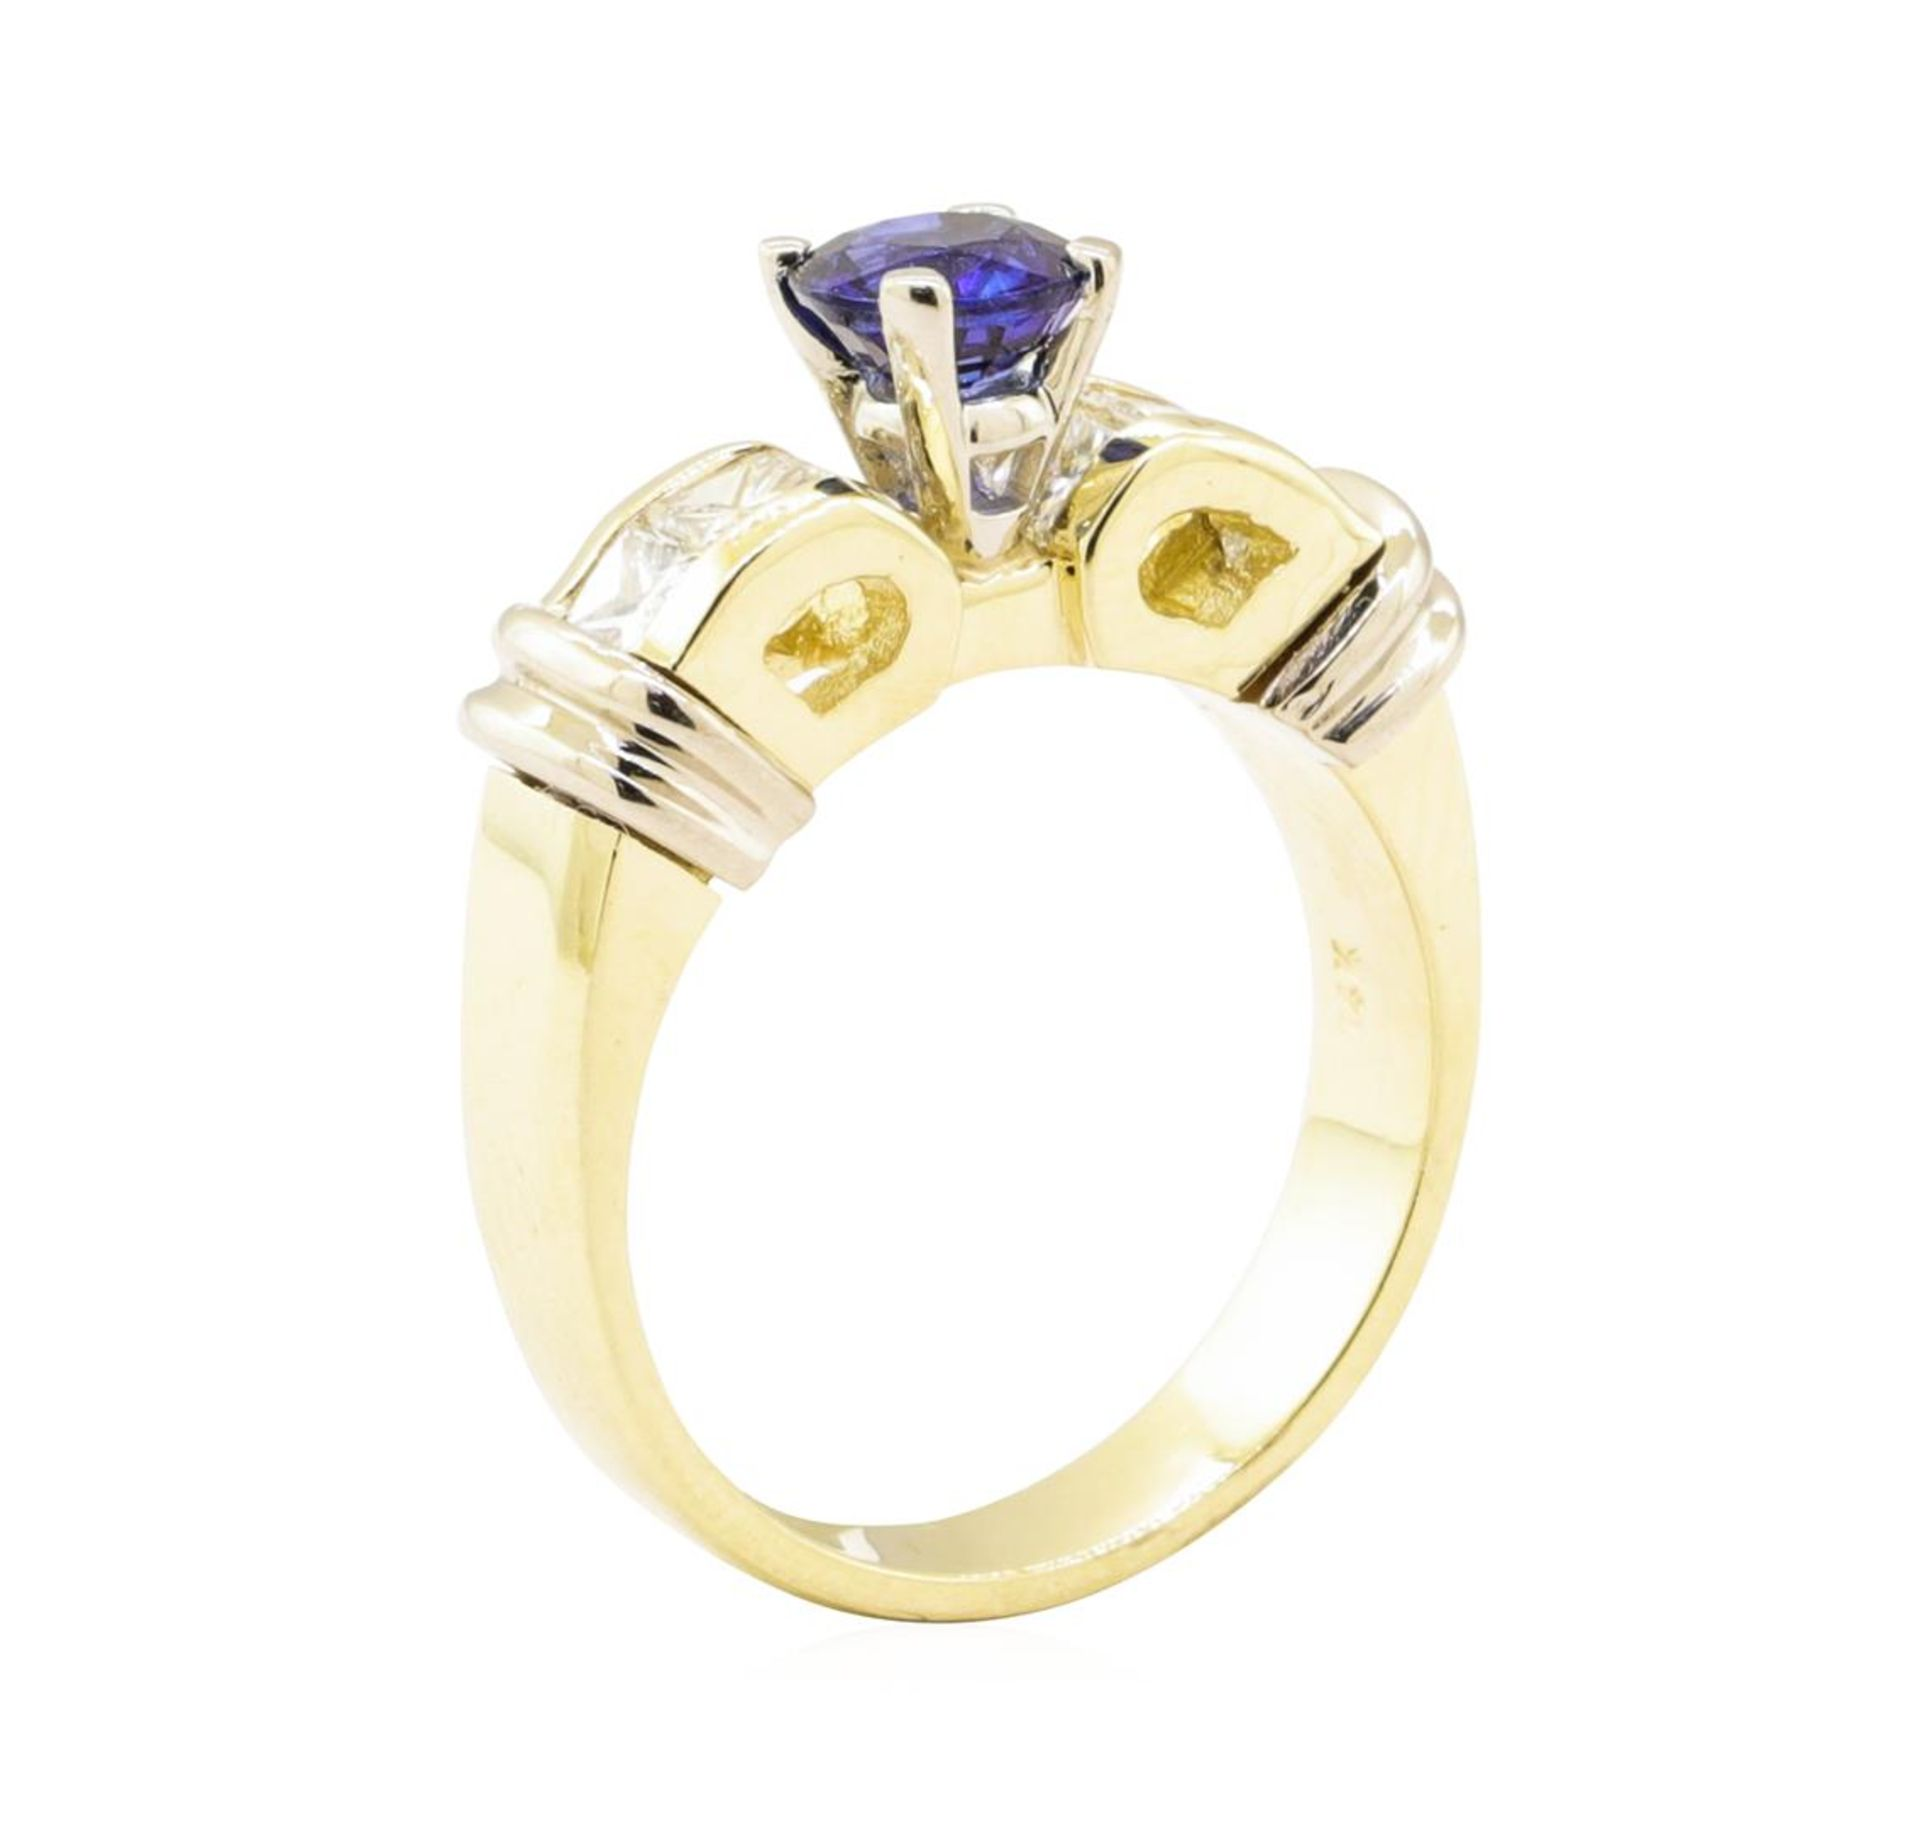 1.67 ctw Blue Sapphire And Diamond Ring - 14KT Yellow And White Gold - Image 4 of 5